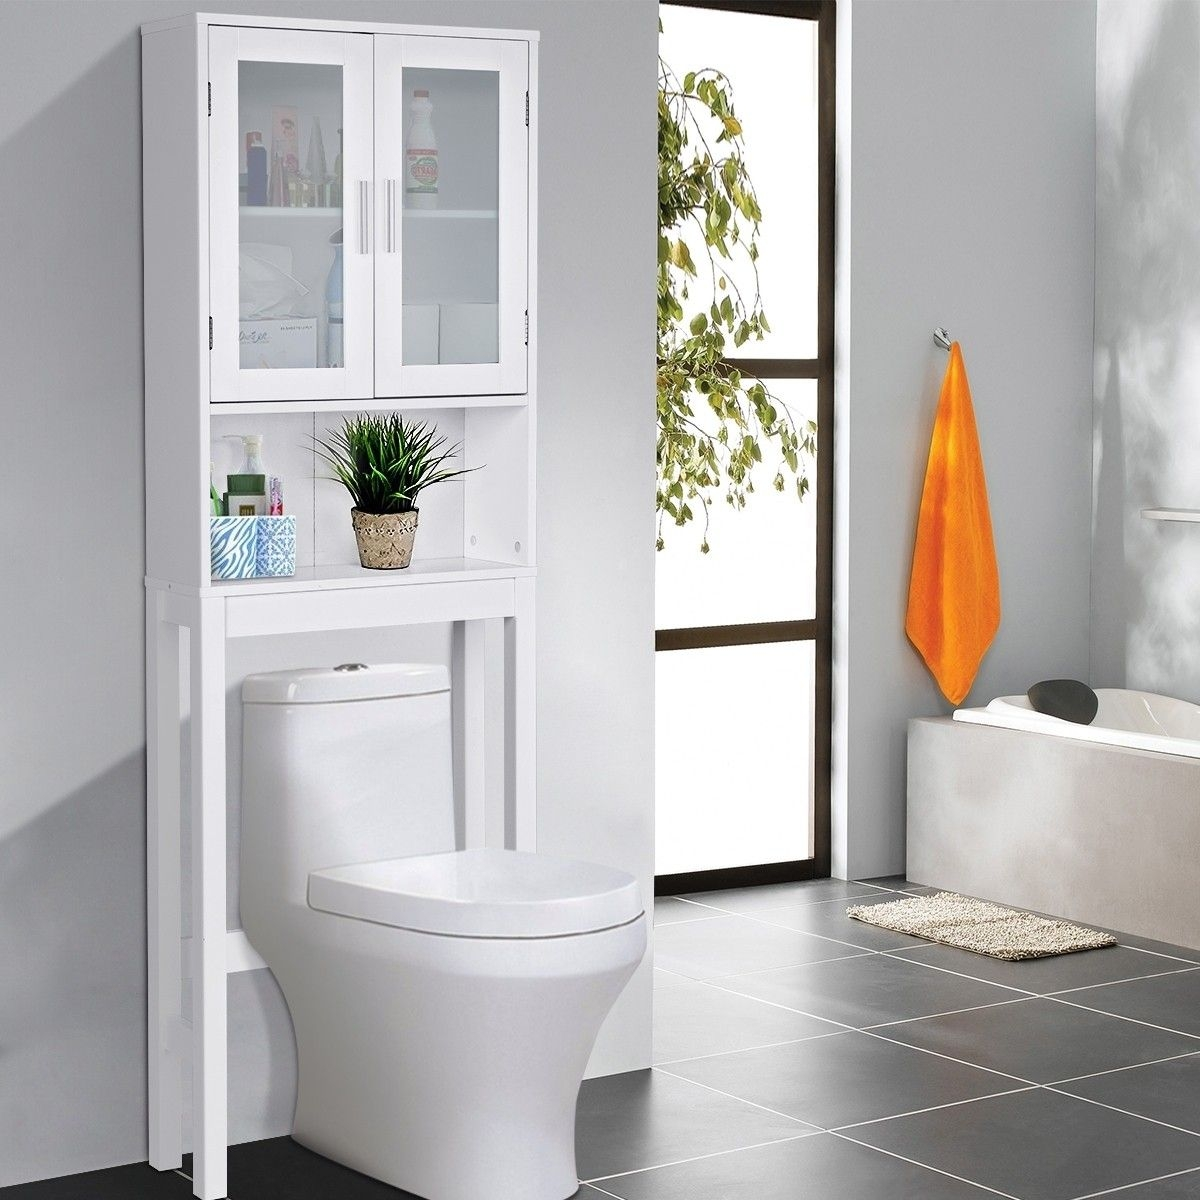 Bathroom Shelves Over Toilet You Ll Love In 2021 Visualhunt